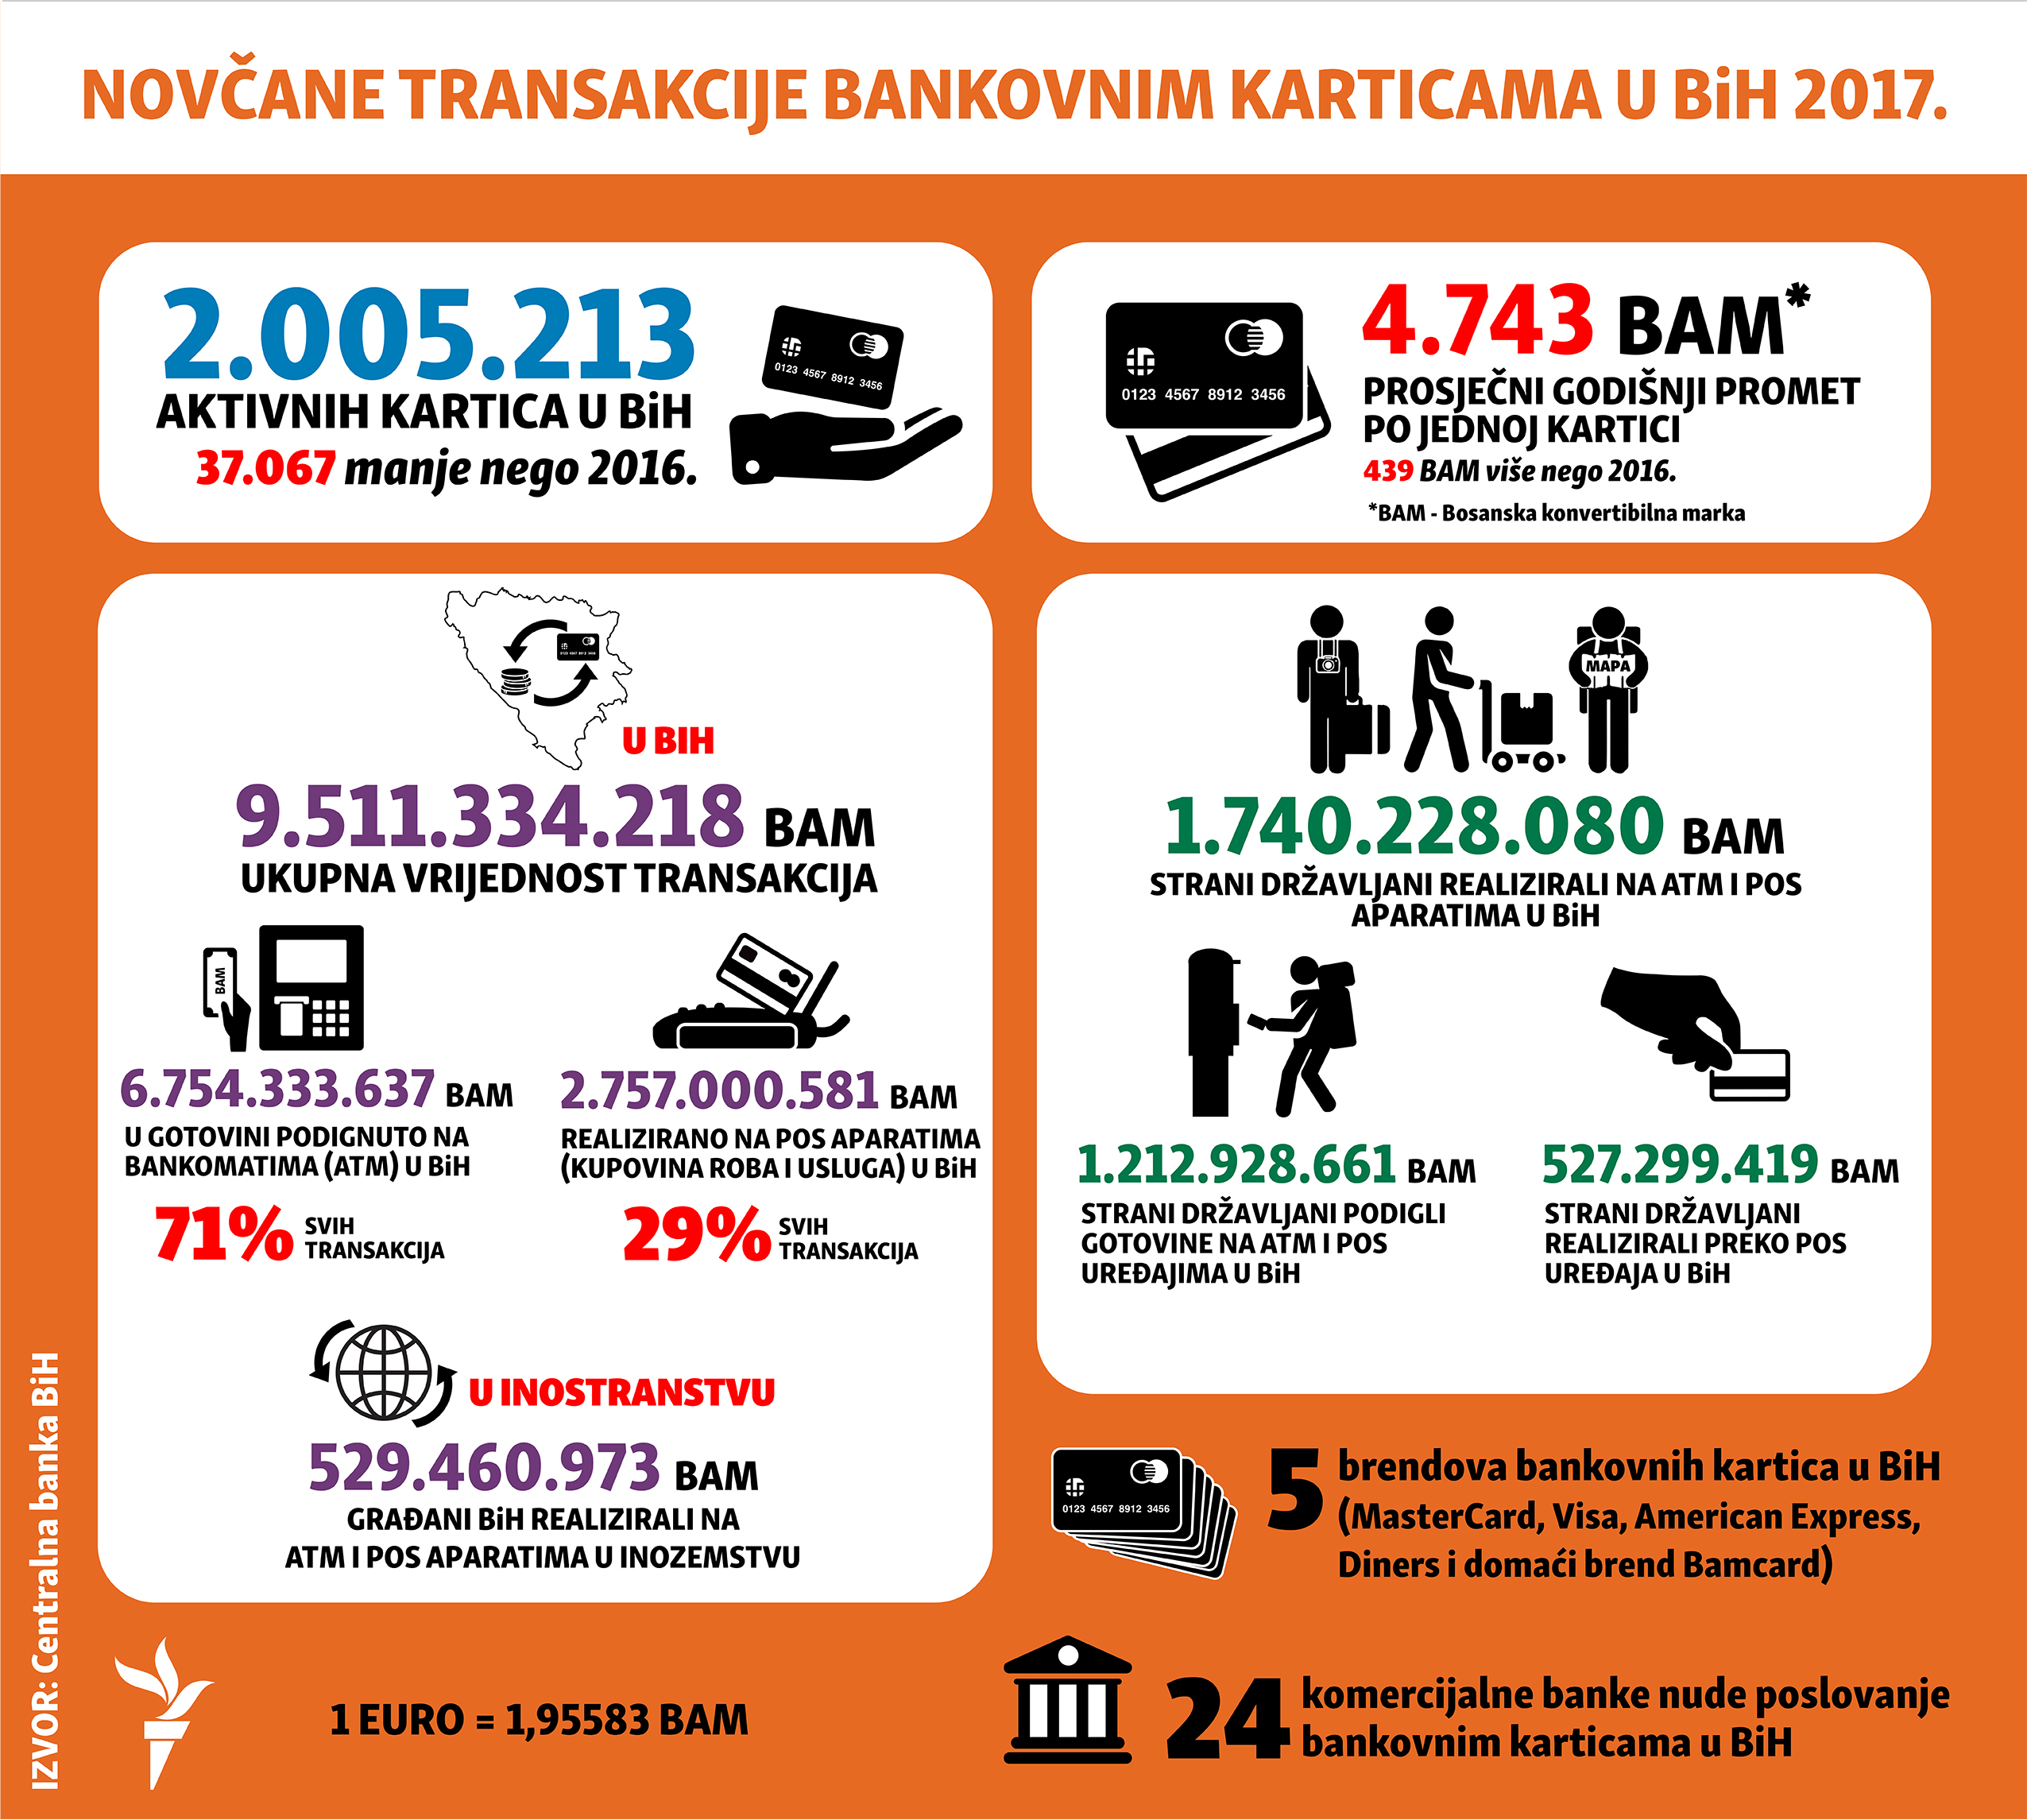 bank transactions credit cards in Bosnia during 2017